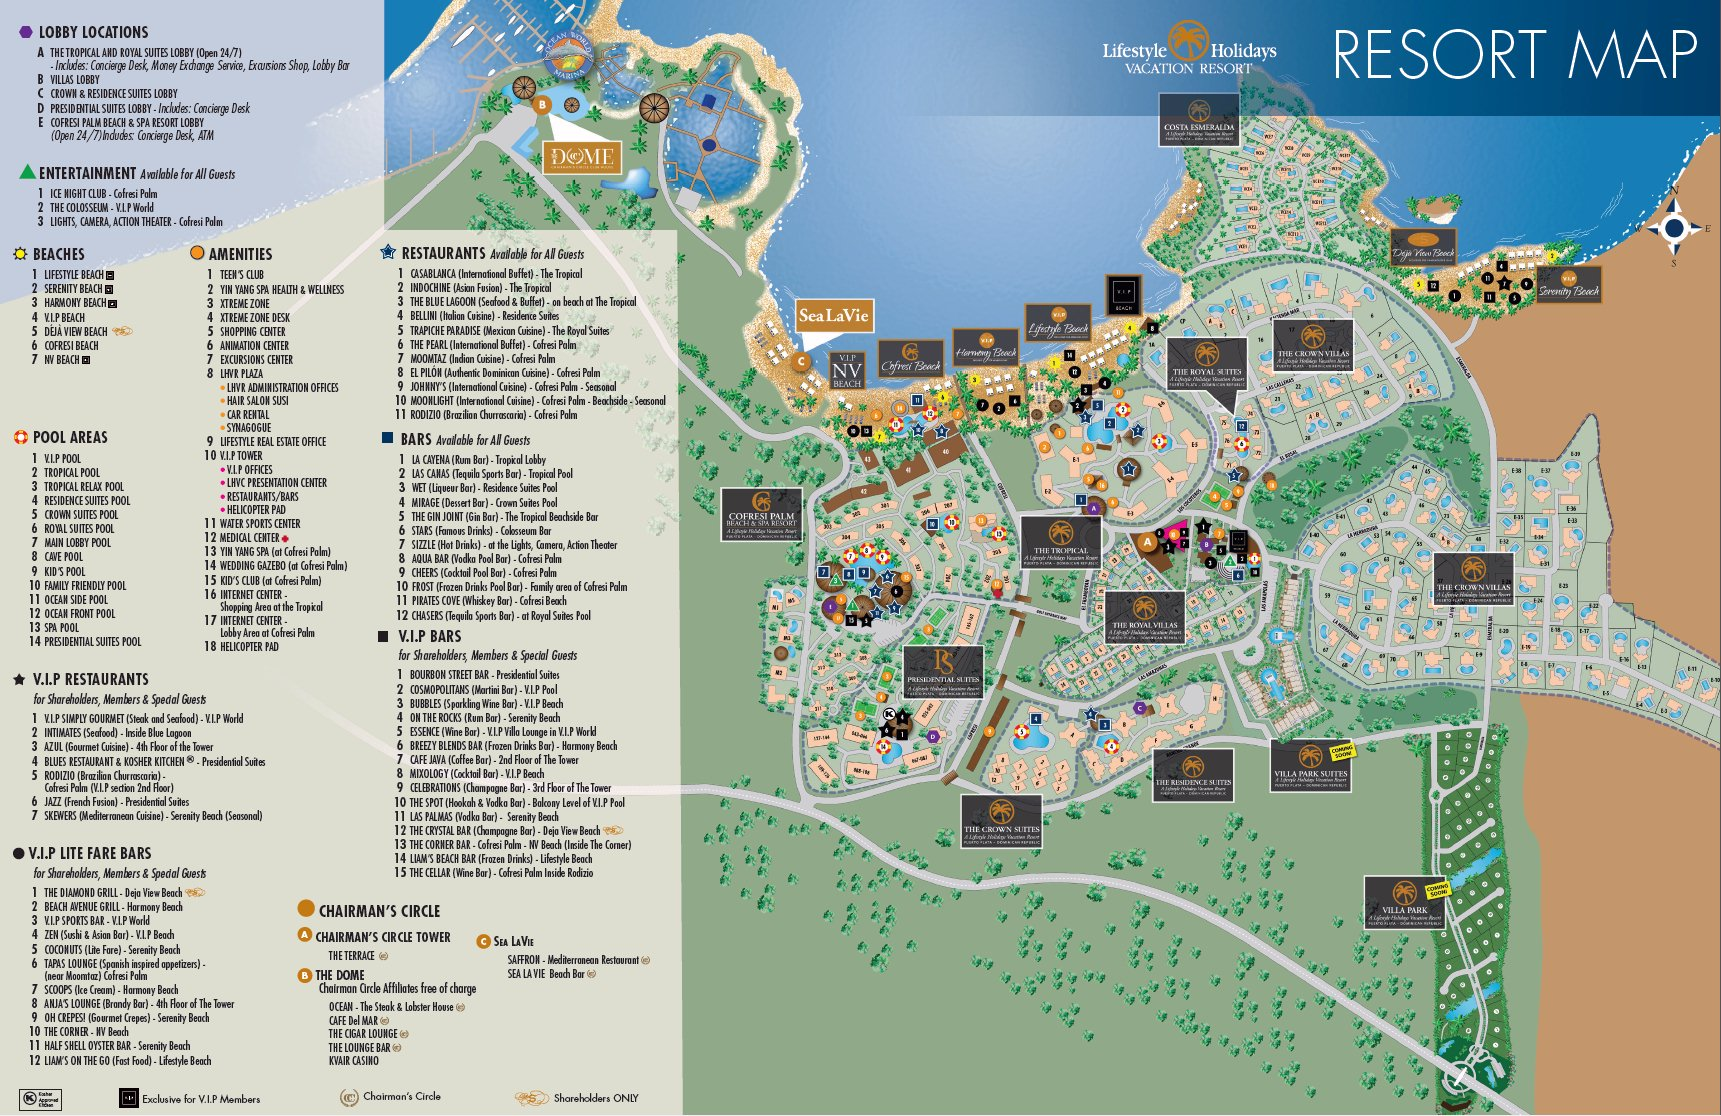 Cofresi Palm Beach Spa Resort Map